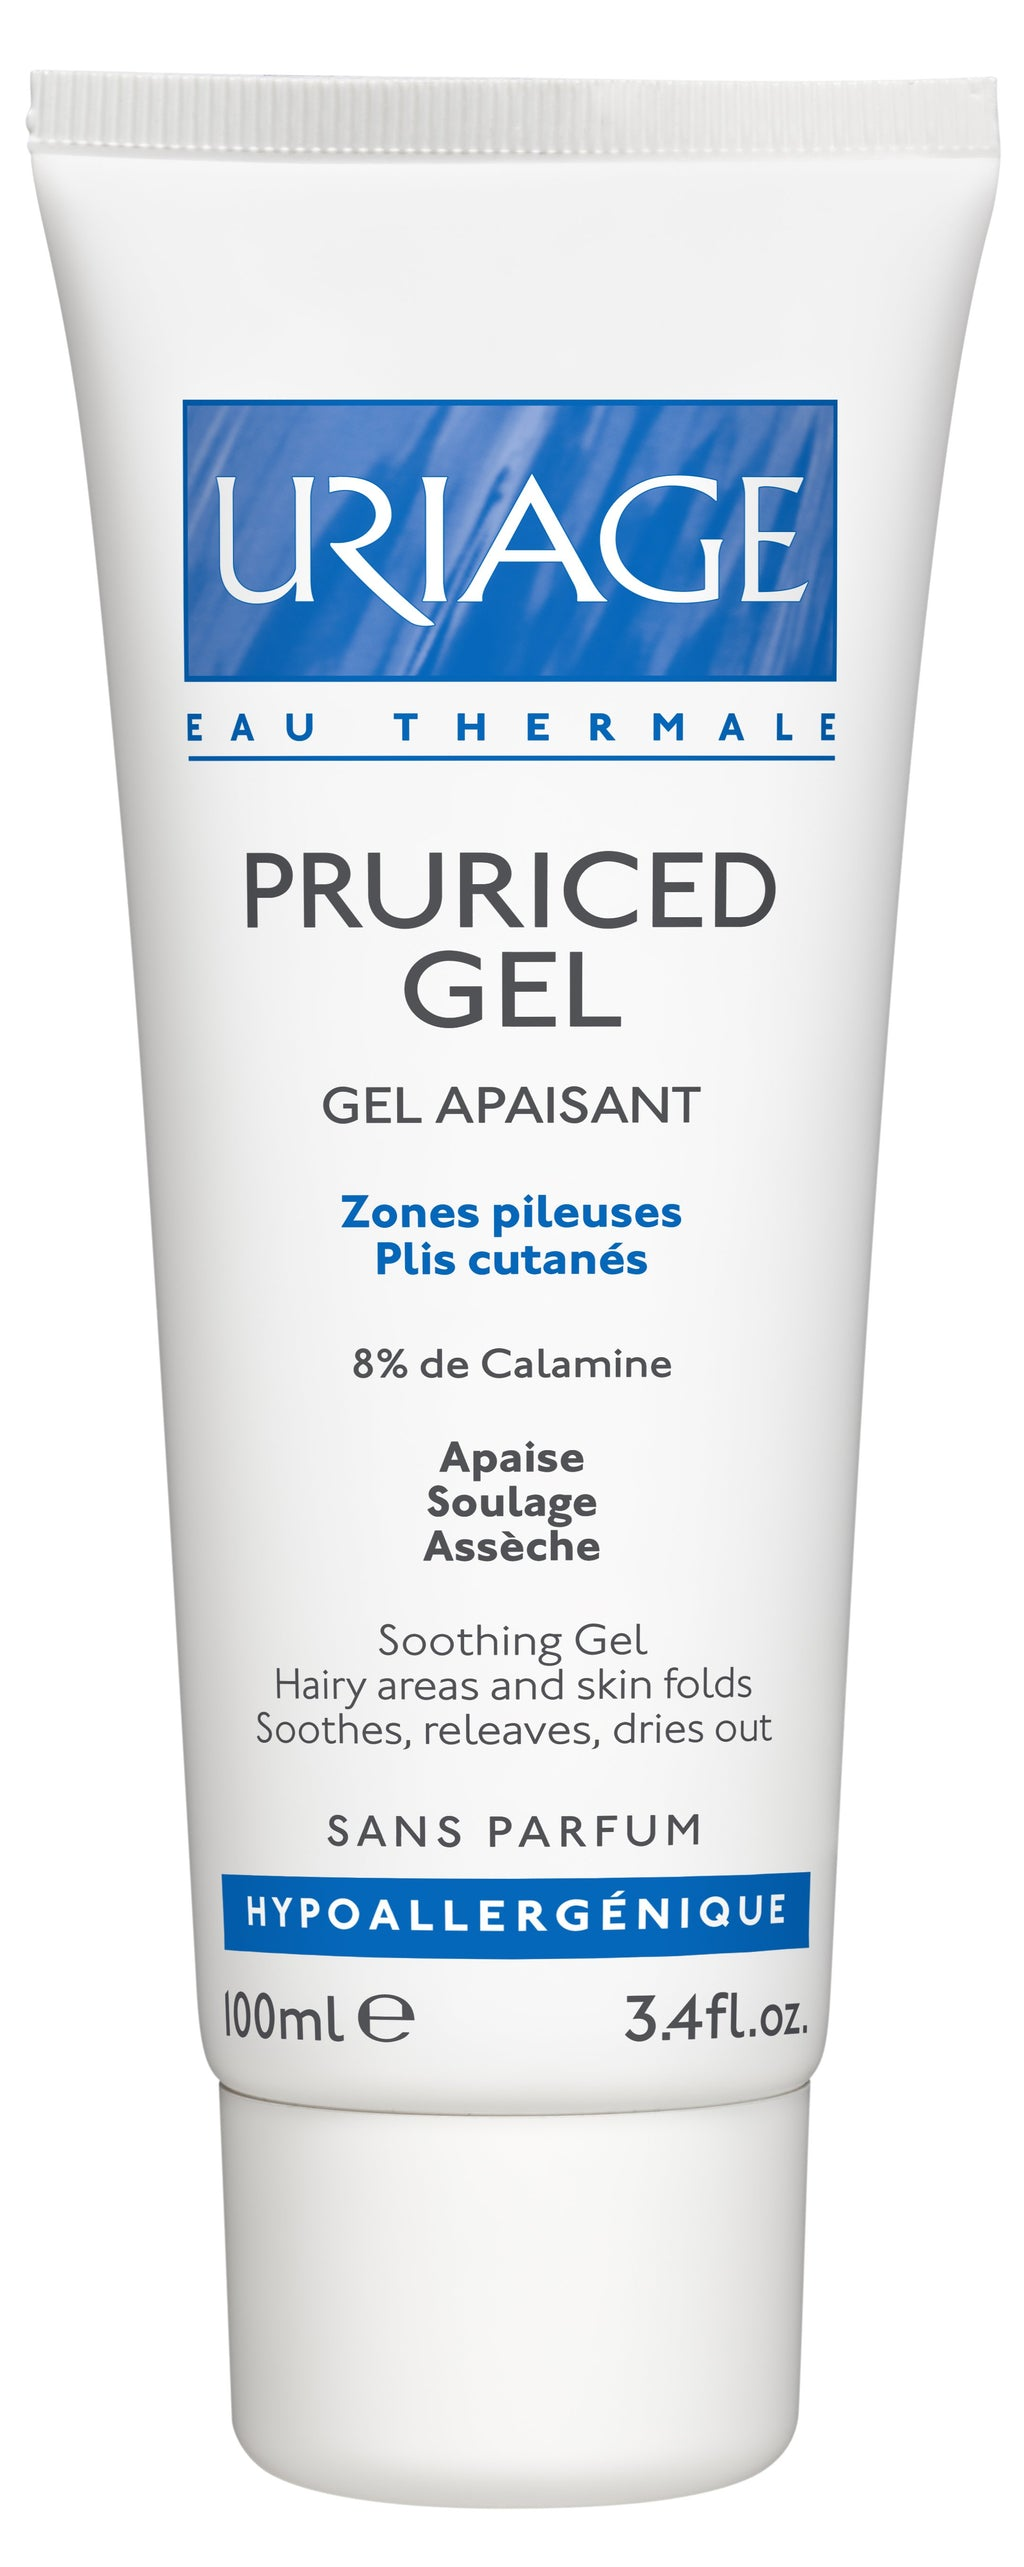 uriage-pruriced-soothing-gel-100ml-cosmetics-online-ie